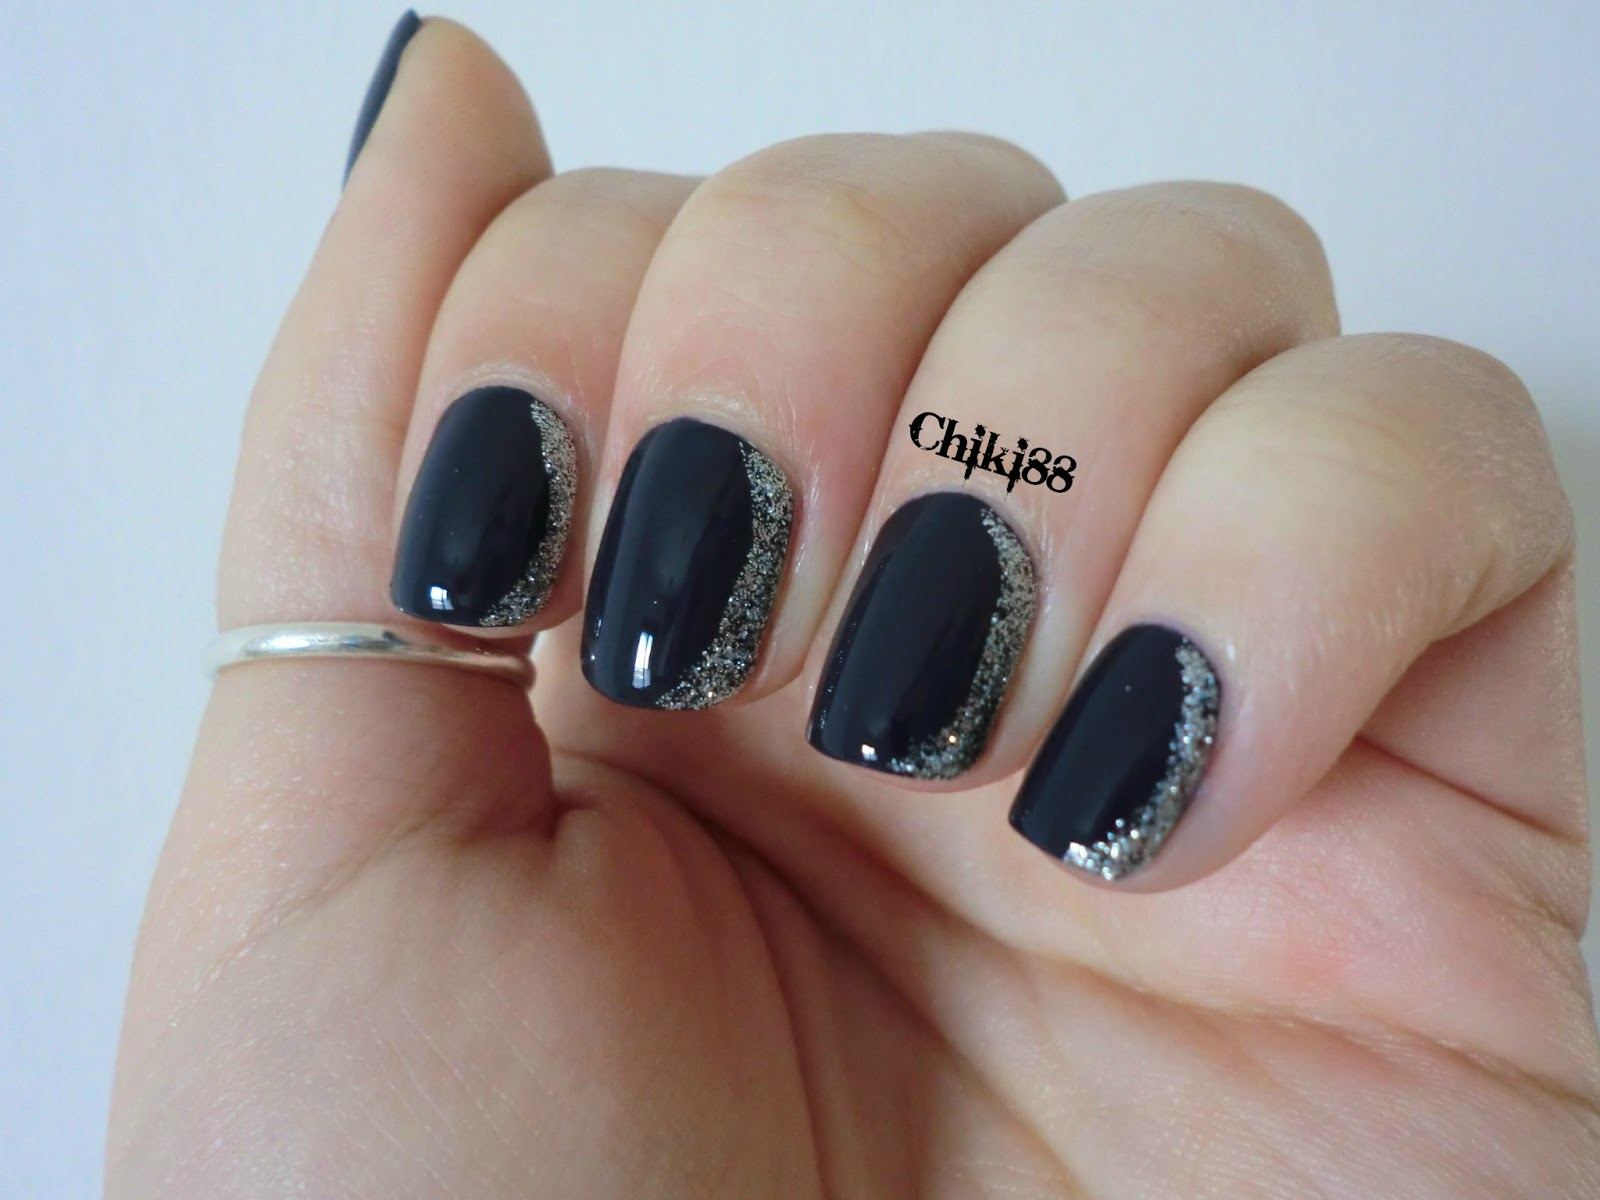 Top CHIKI88 my passion for nails!: aprile 2013 IA58